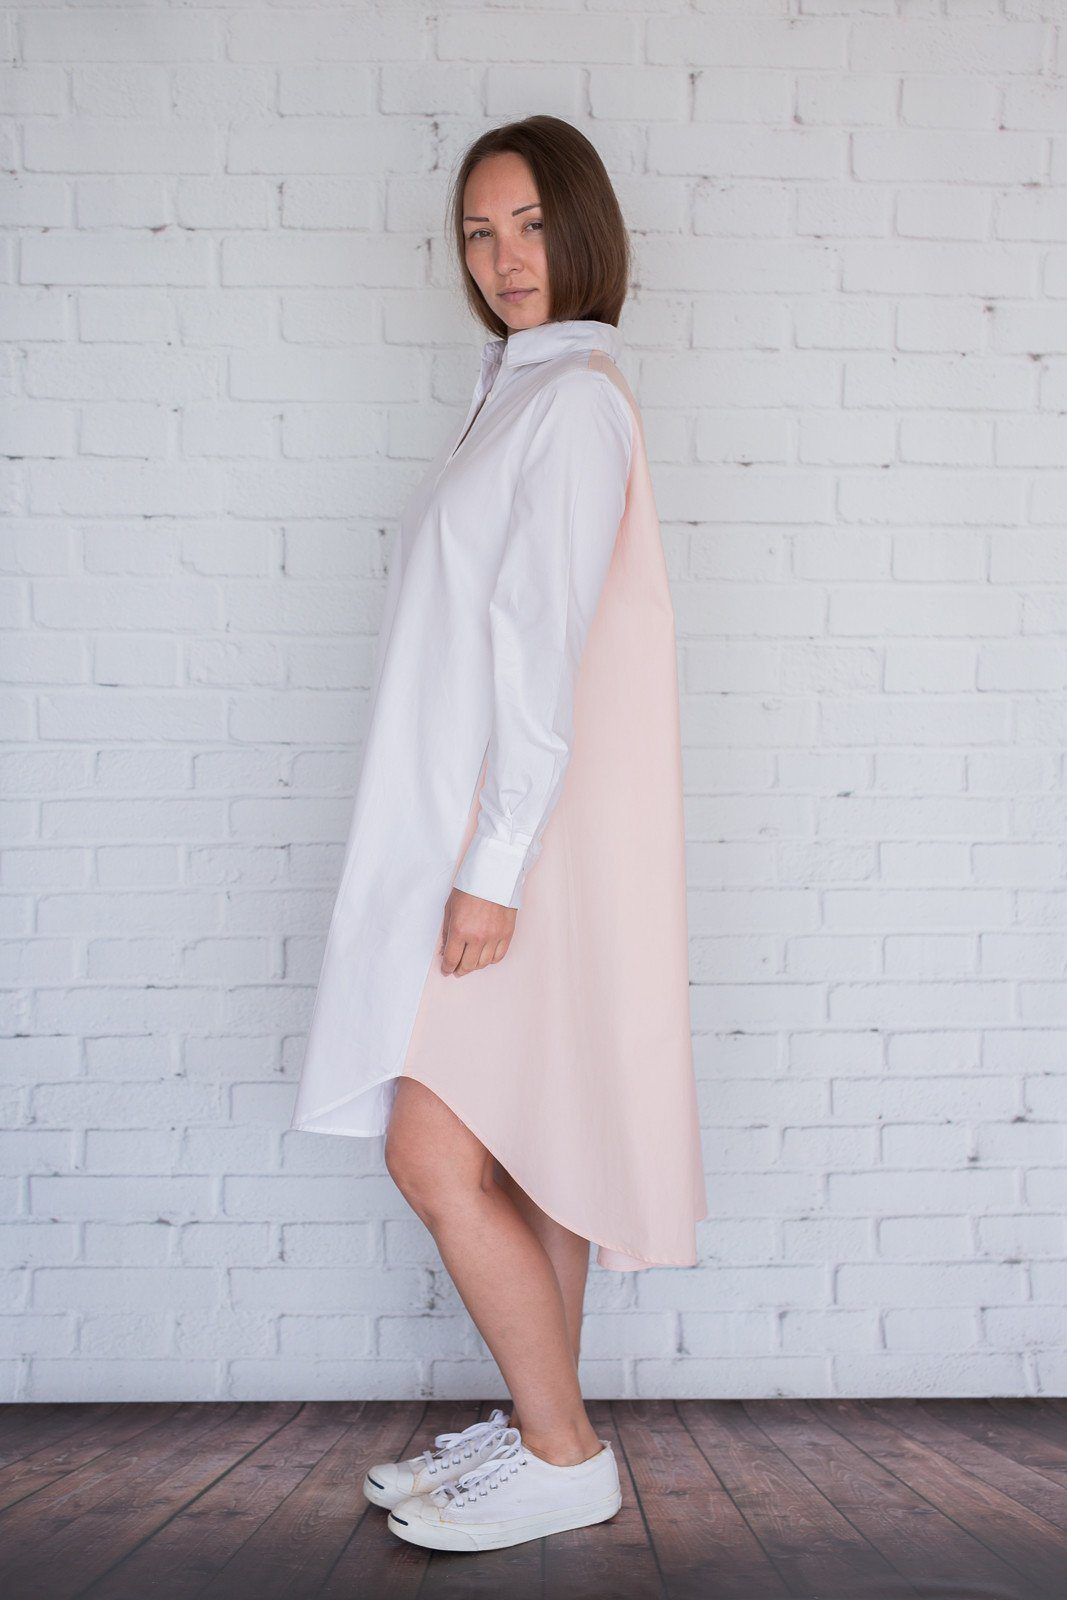 Maaya Short Length - White/Light Peach Poplin - PROJECT 6, modest fashion